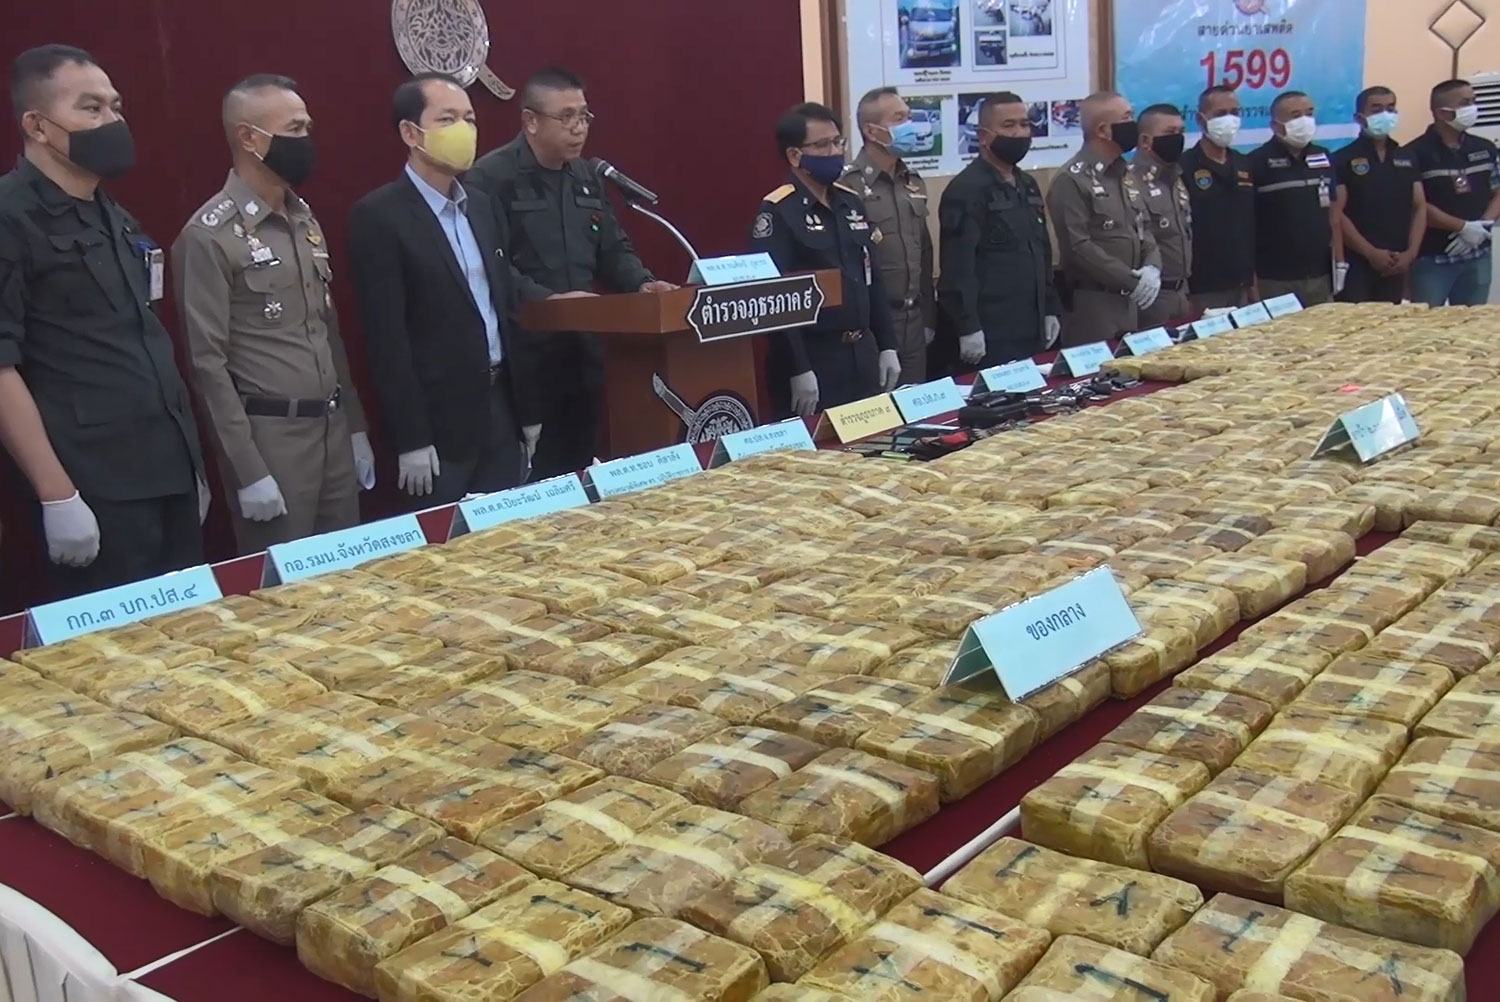 Packs of 2 million speed pills are displayed during a press conference in Songkhla on Friday. Police arrested four suspects in Muang and Hat Yai districts. (Photo: Assawin Pakkawan)